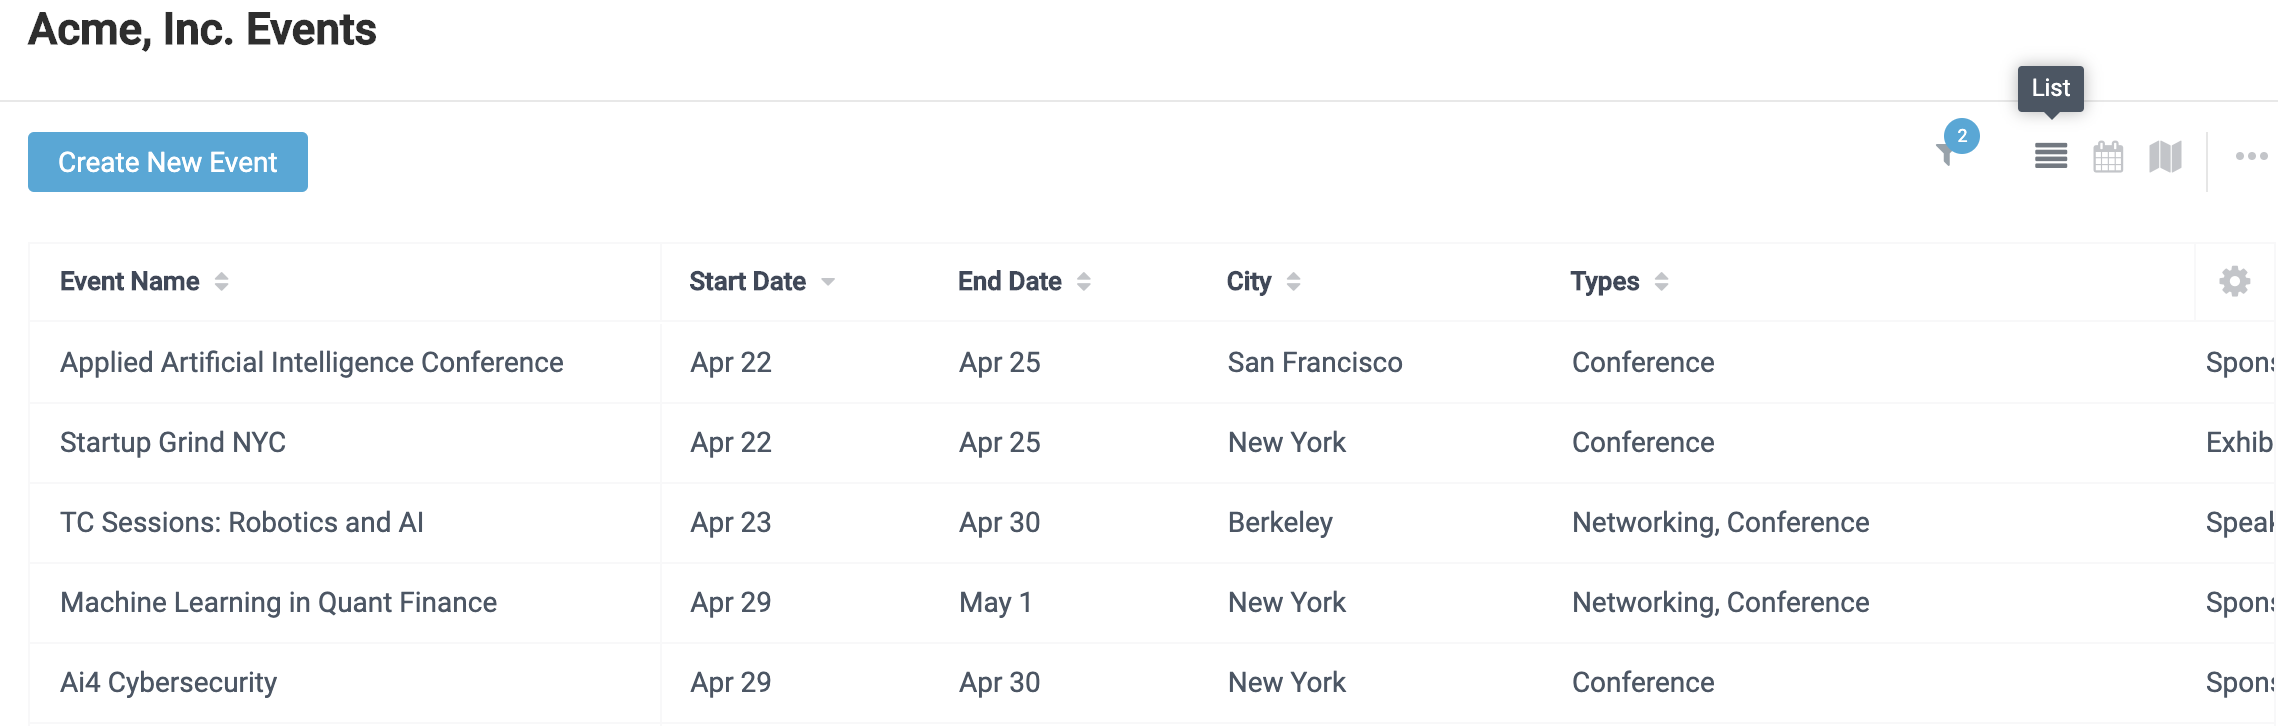 How do I view my events on a calendar or map? - EventGeek Support Center